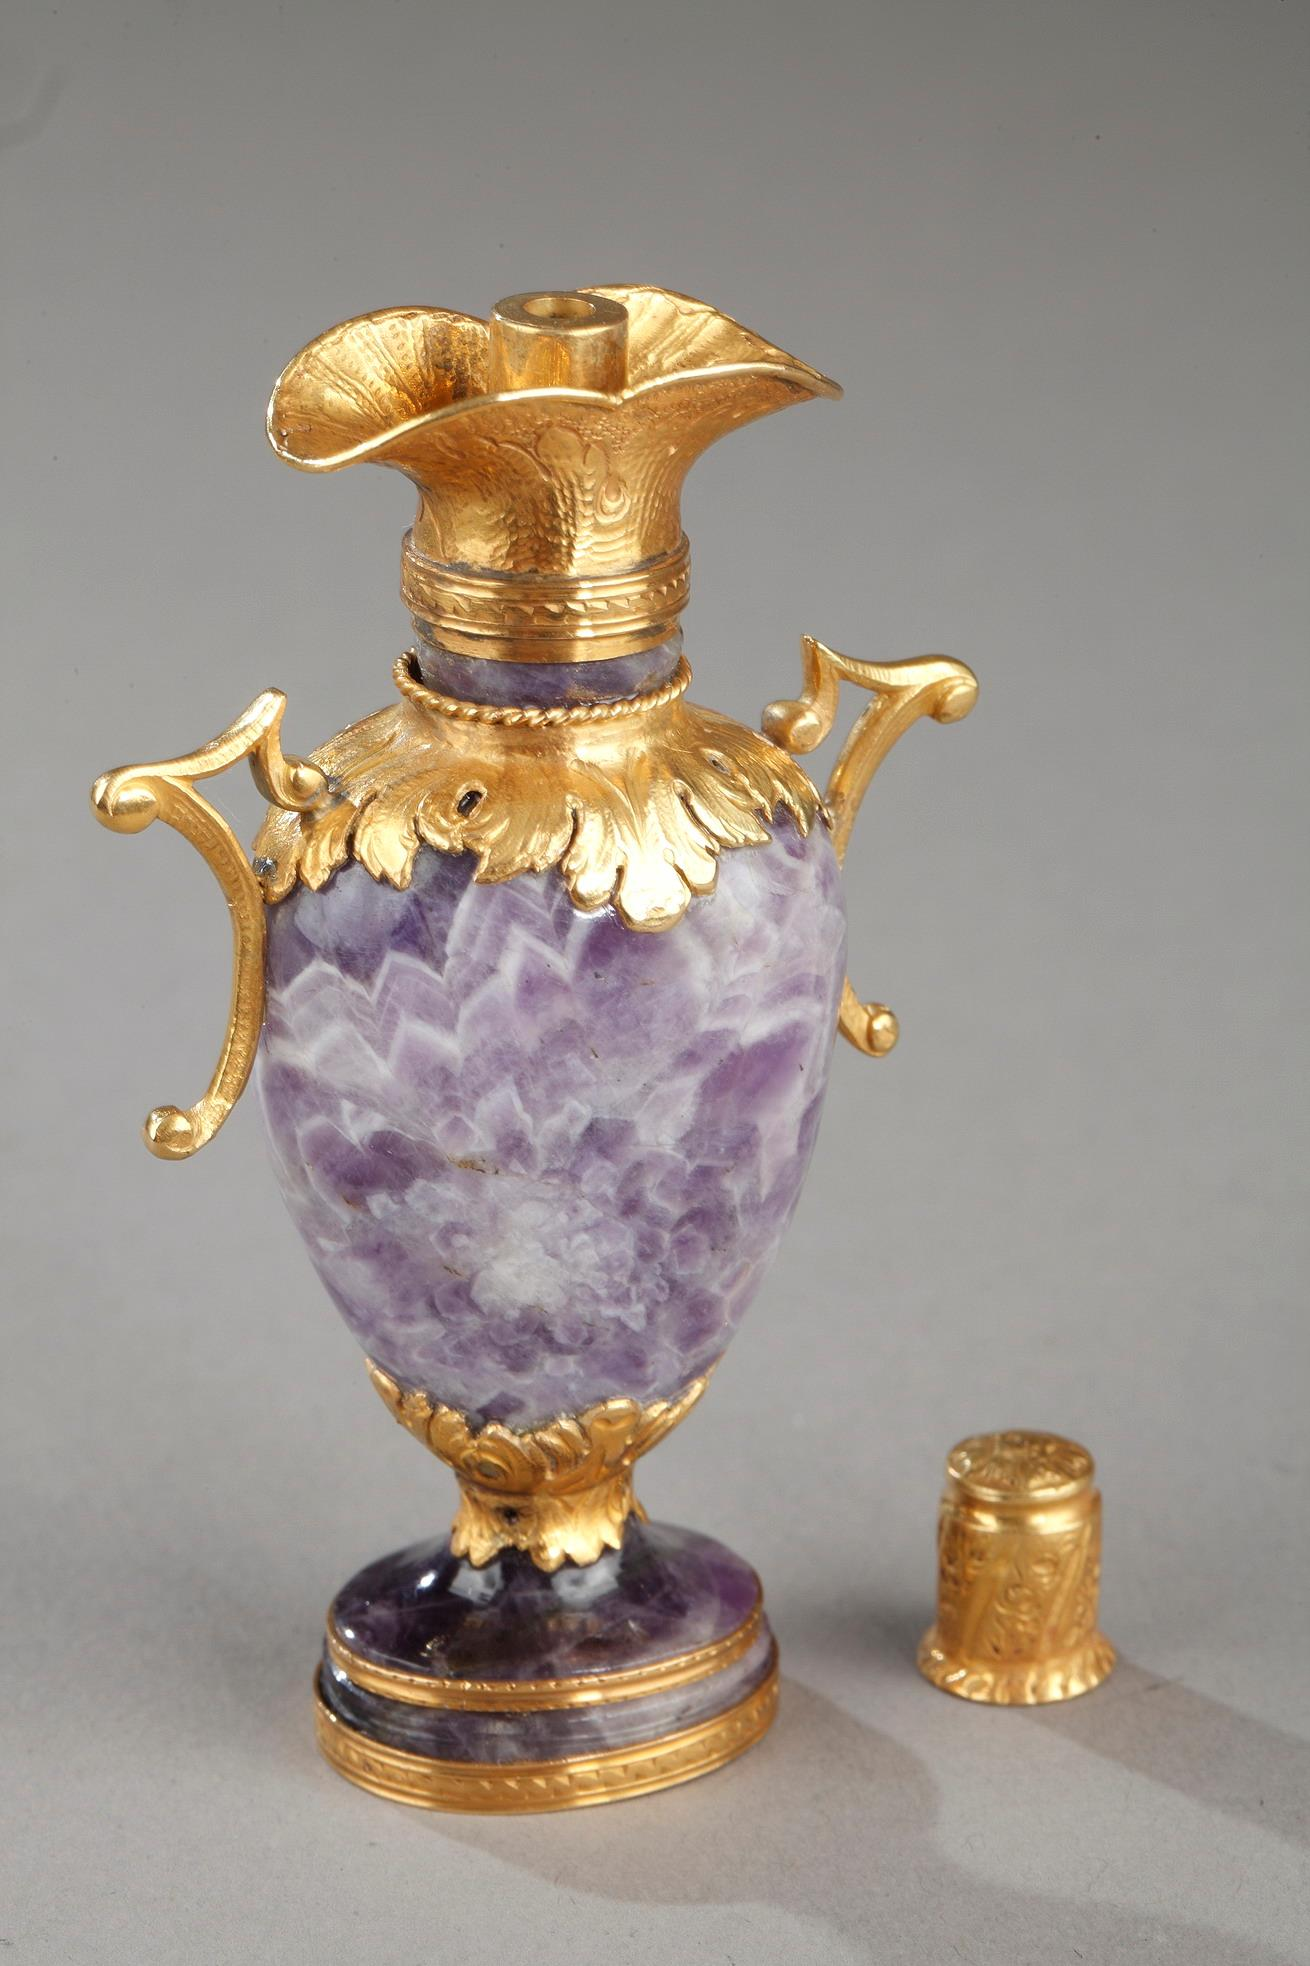 Gold and amethyst Perfum Flask. Early 19th century.